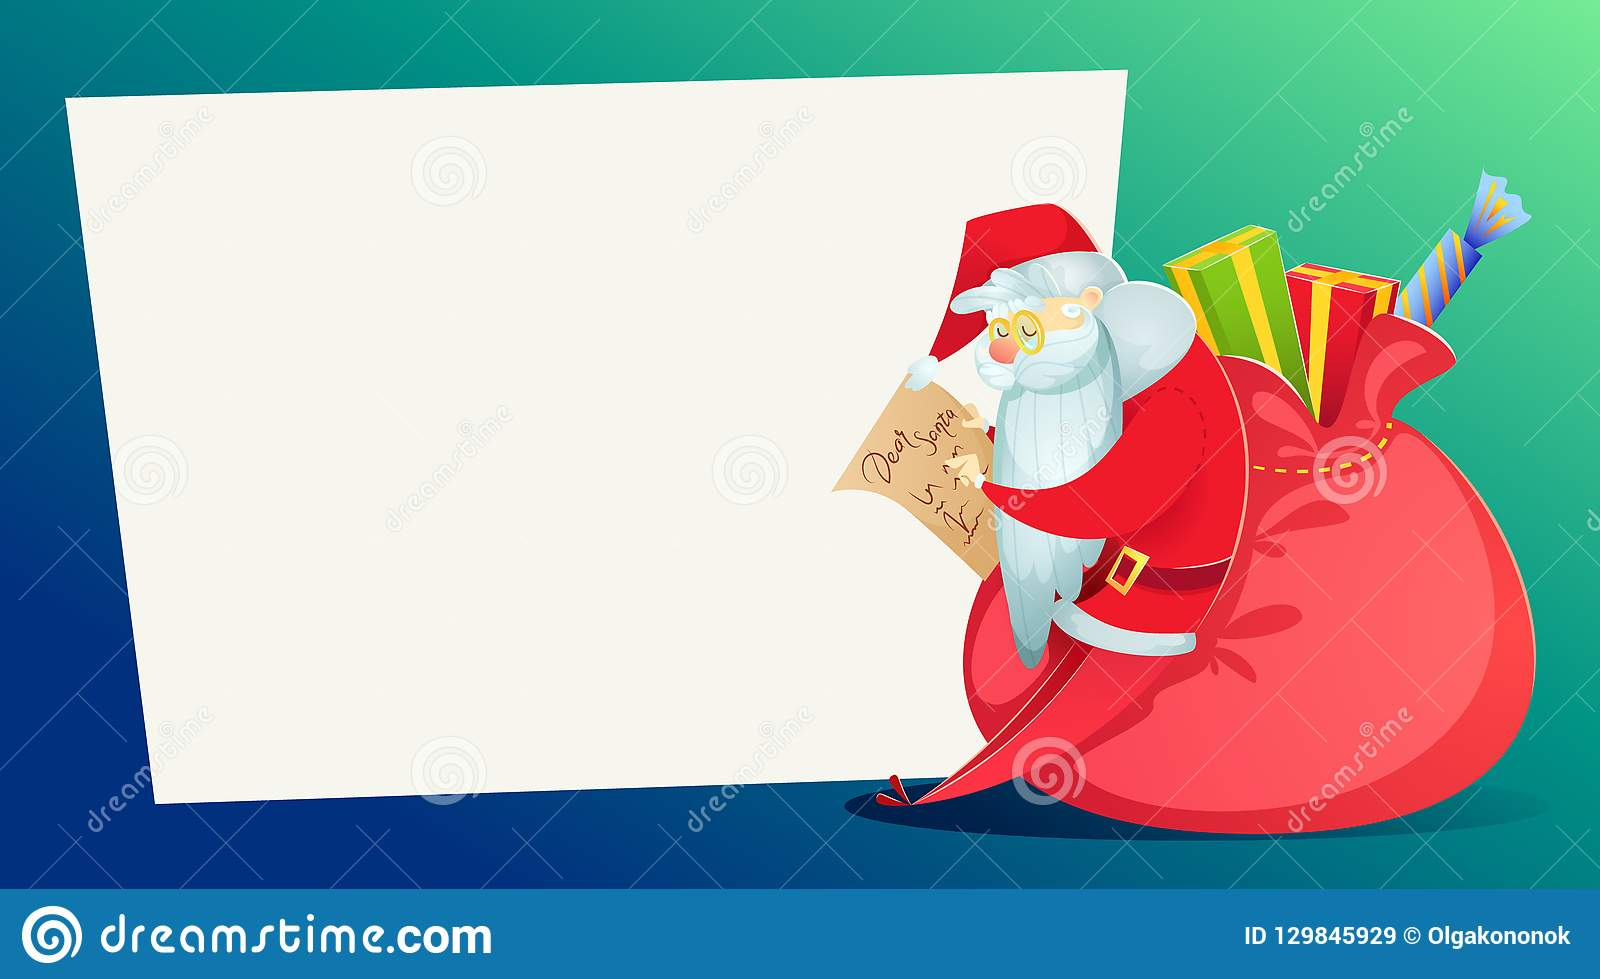 Huge Christmas Card.Christmas Card Santa Claus With A Huge Bag Of Gifts Reads The